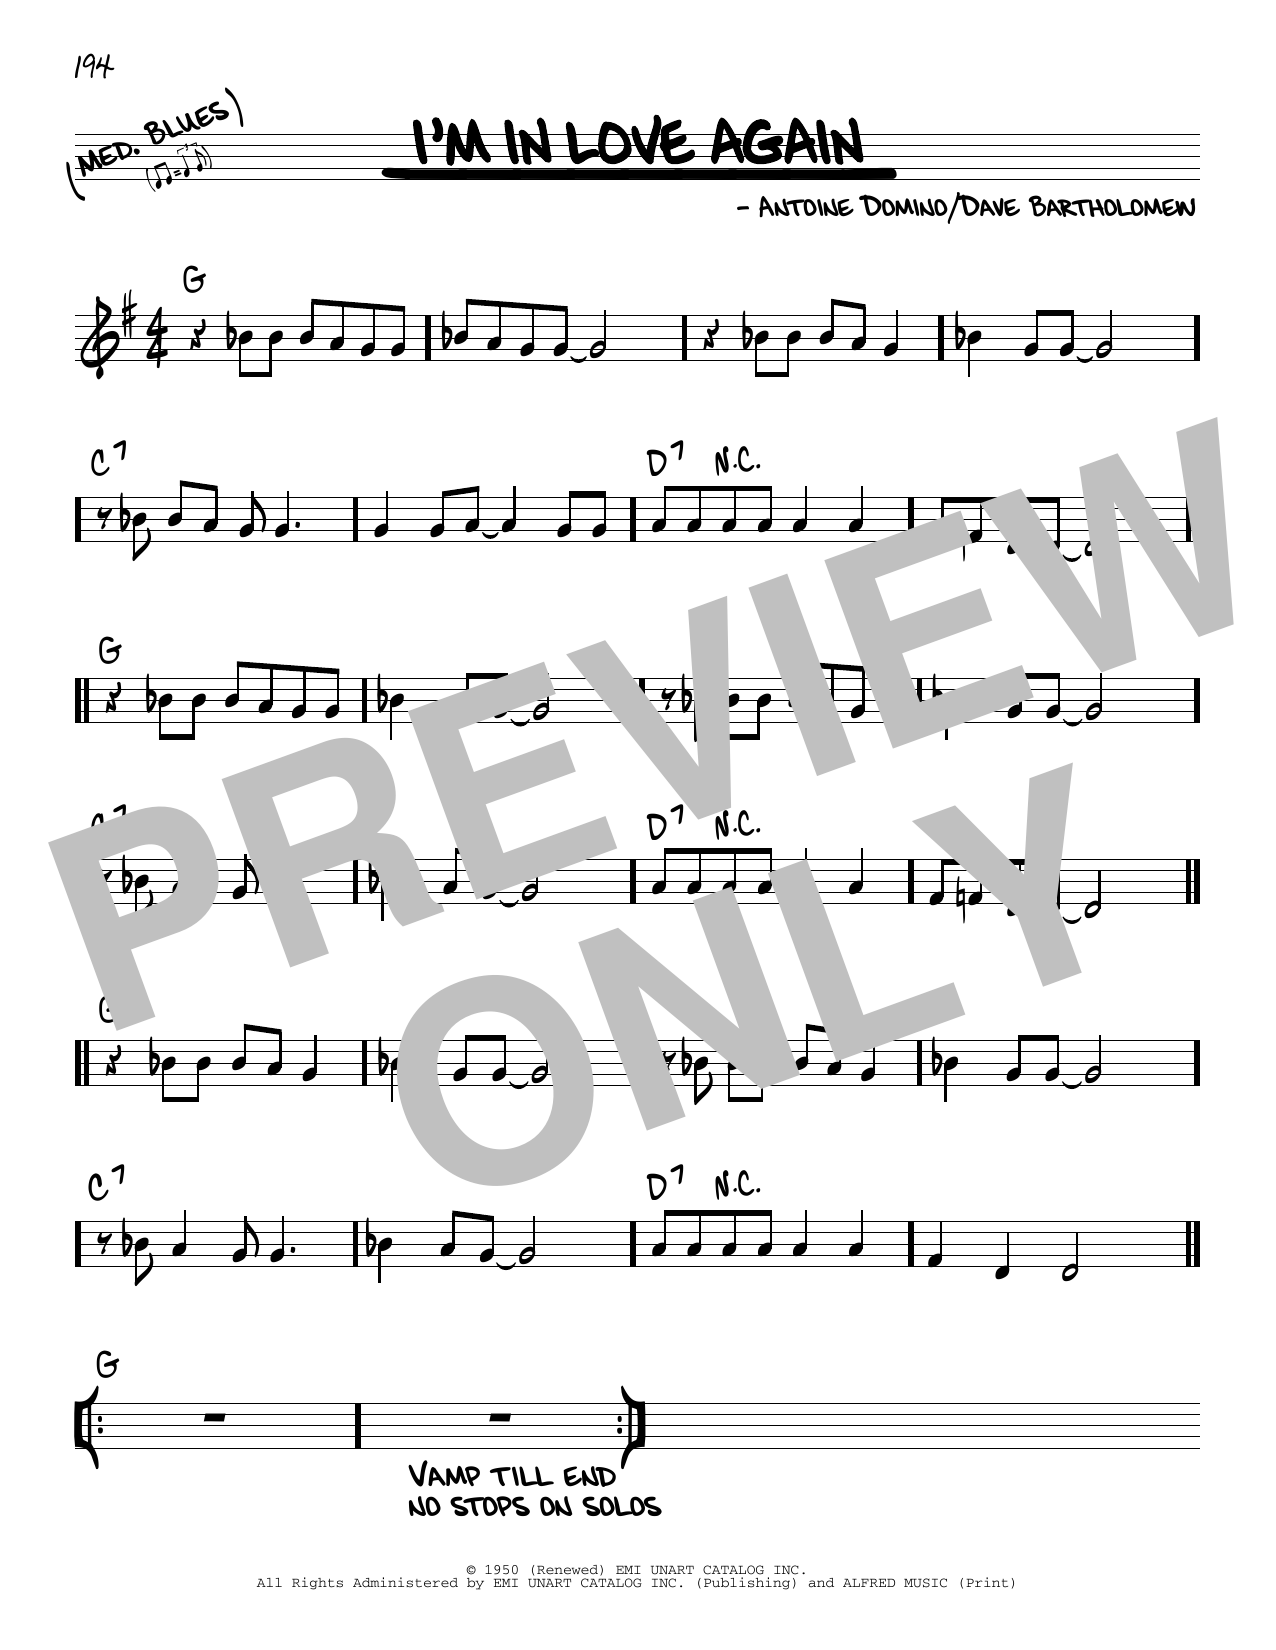 Animals I'm In Love Again sheet music notes and chords. Download Printable PDF.